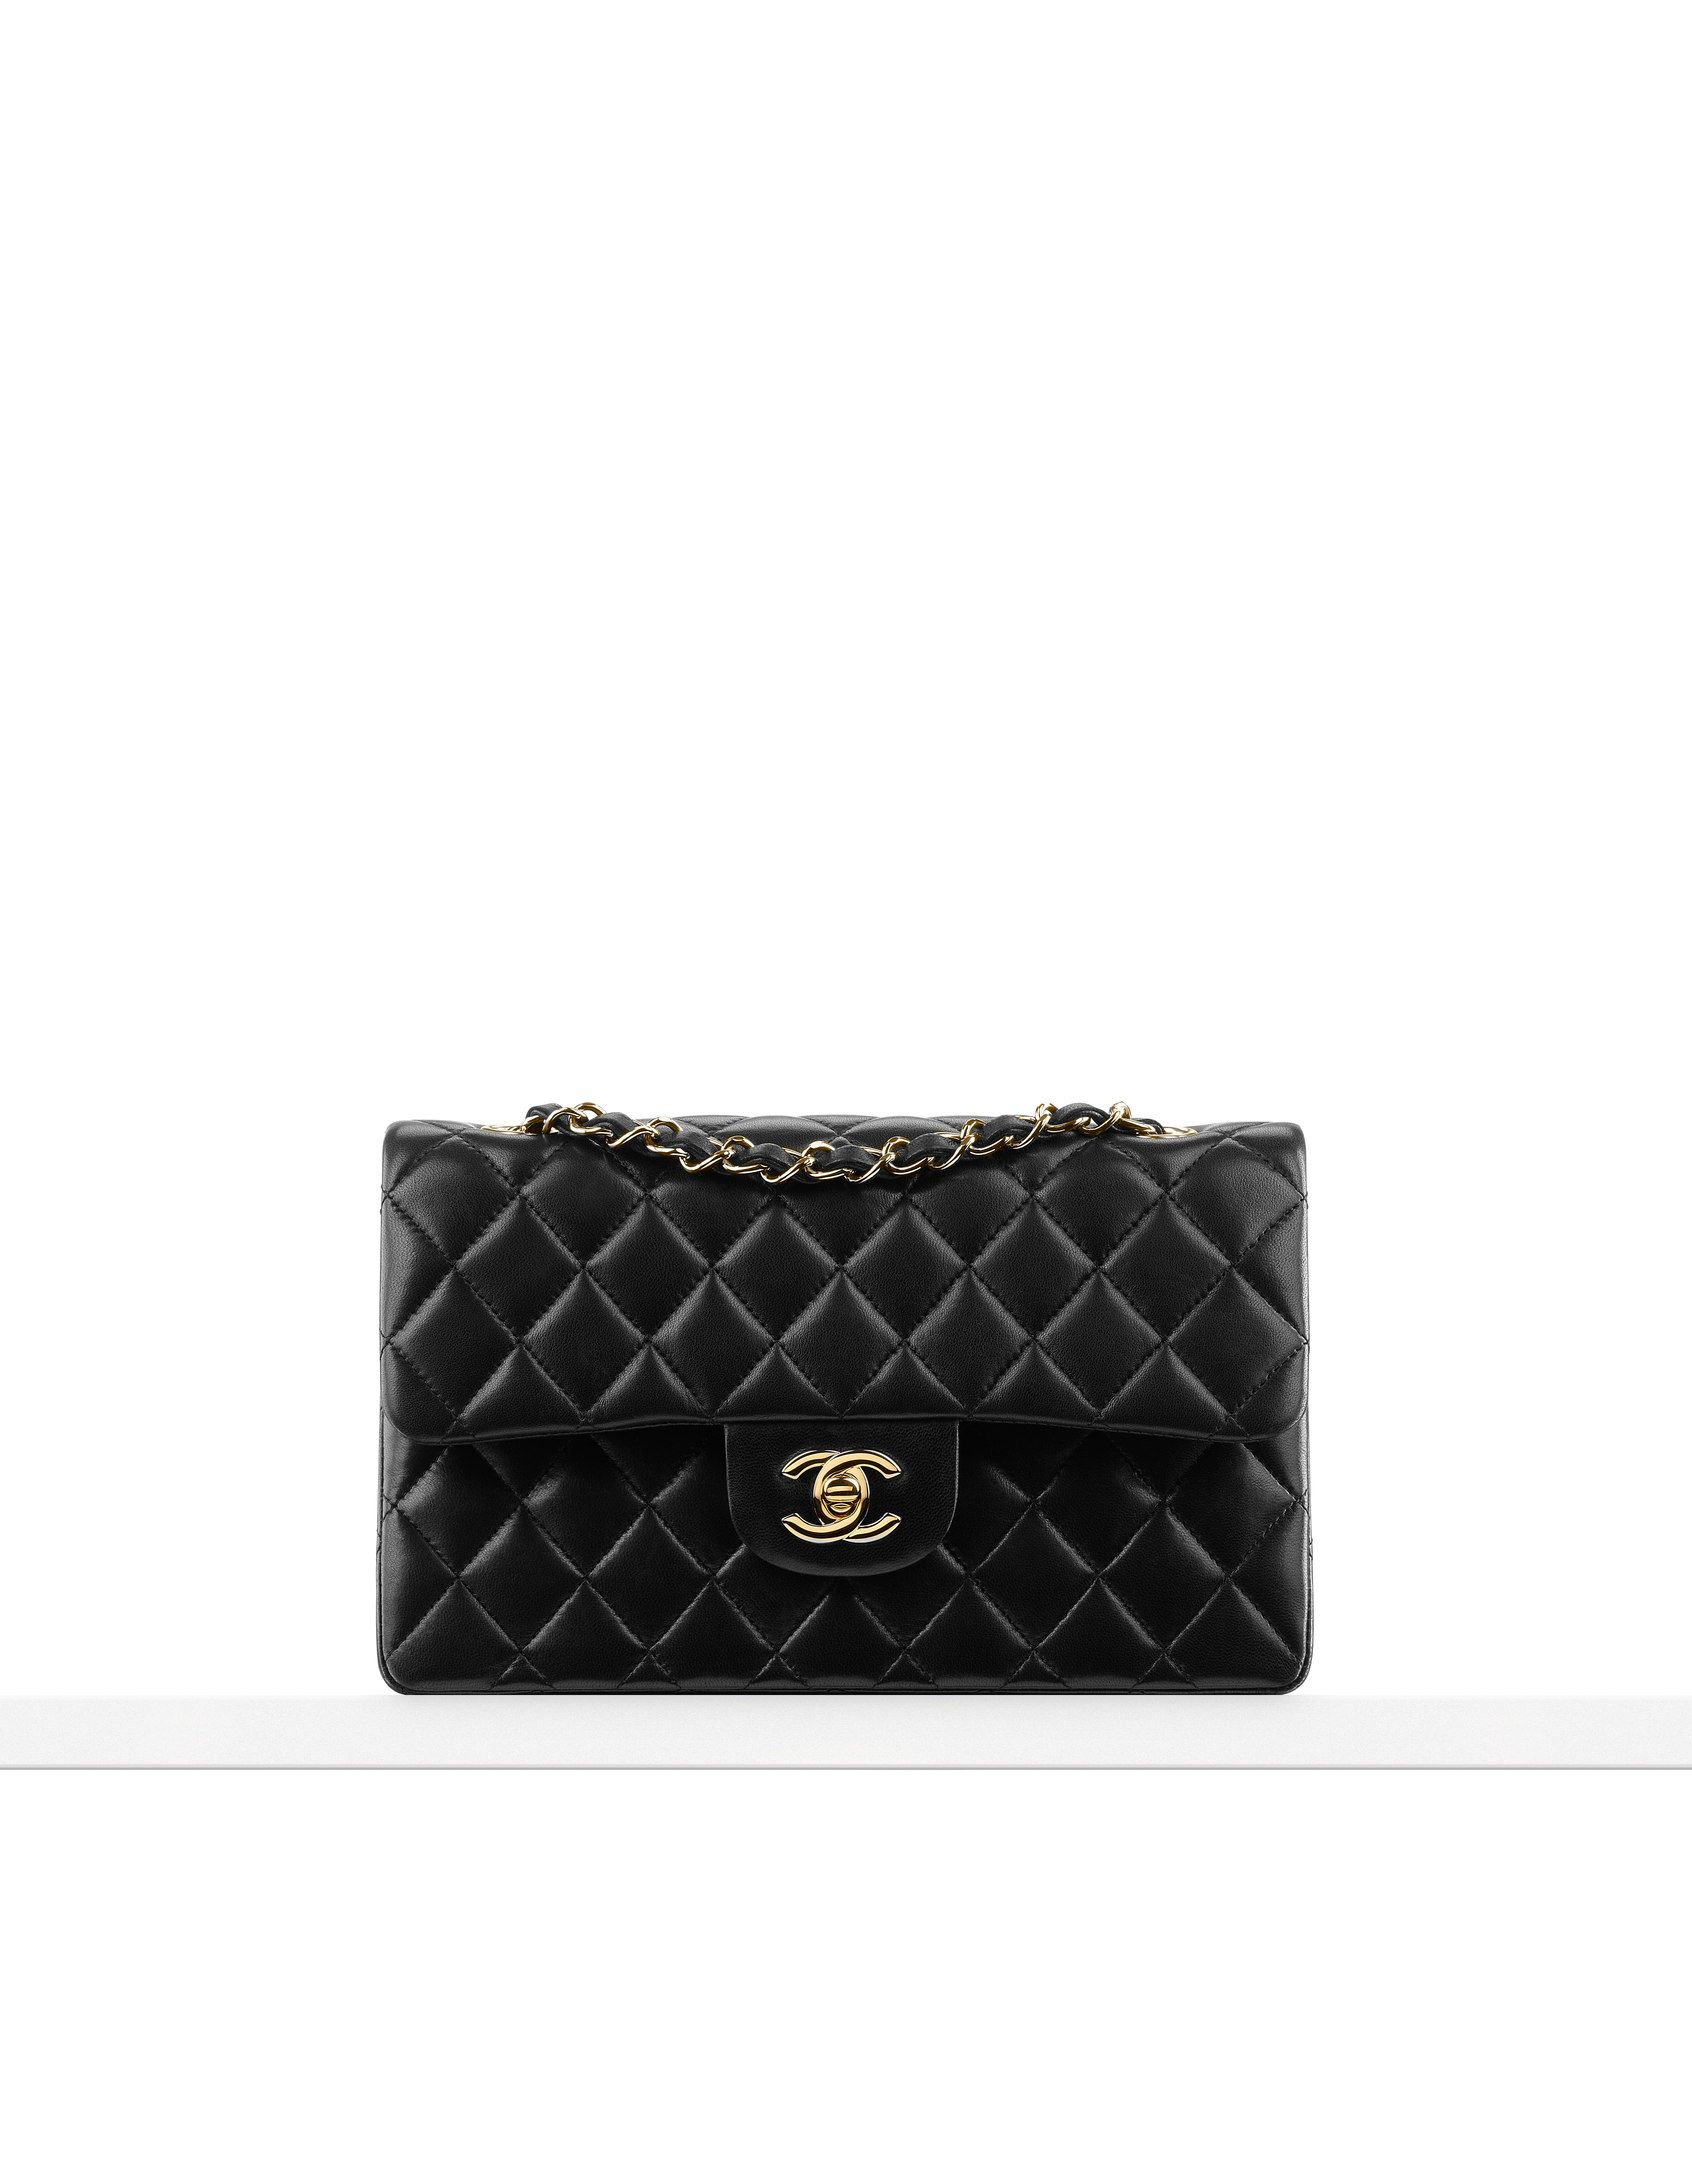 80881ce3fc5d  Chanel small flap in lambskin leather with gold hardware.  Goals   LuxuryHandbag  Handbag